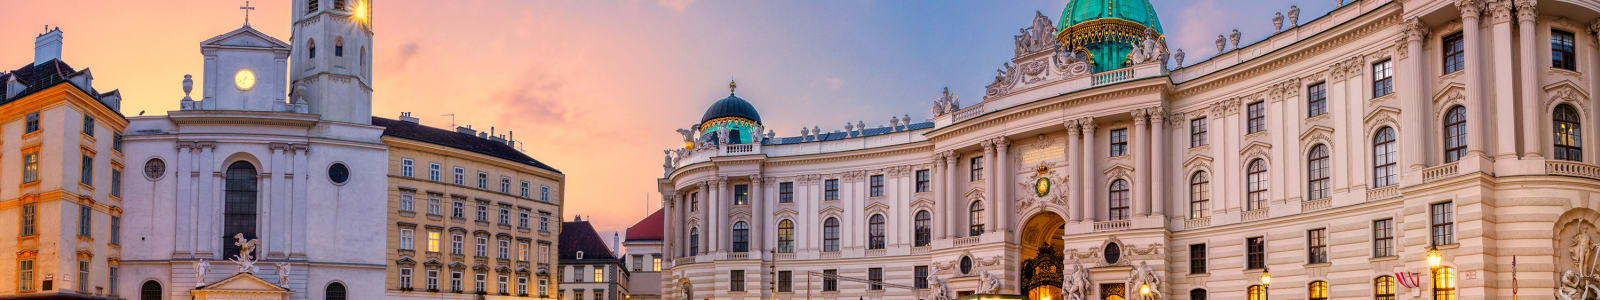 Imperial Hofburg Palace, Vienna